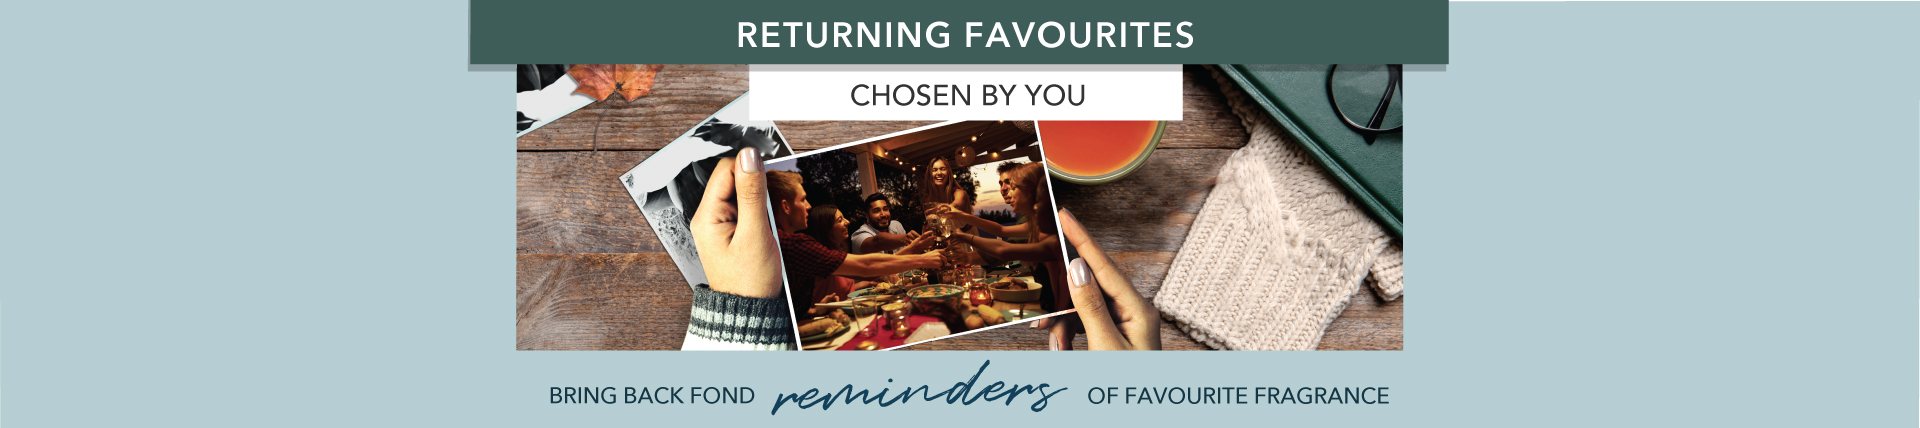 Returning Favorites Chosen By You